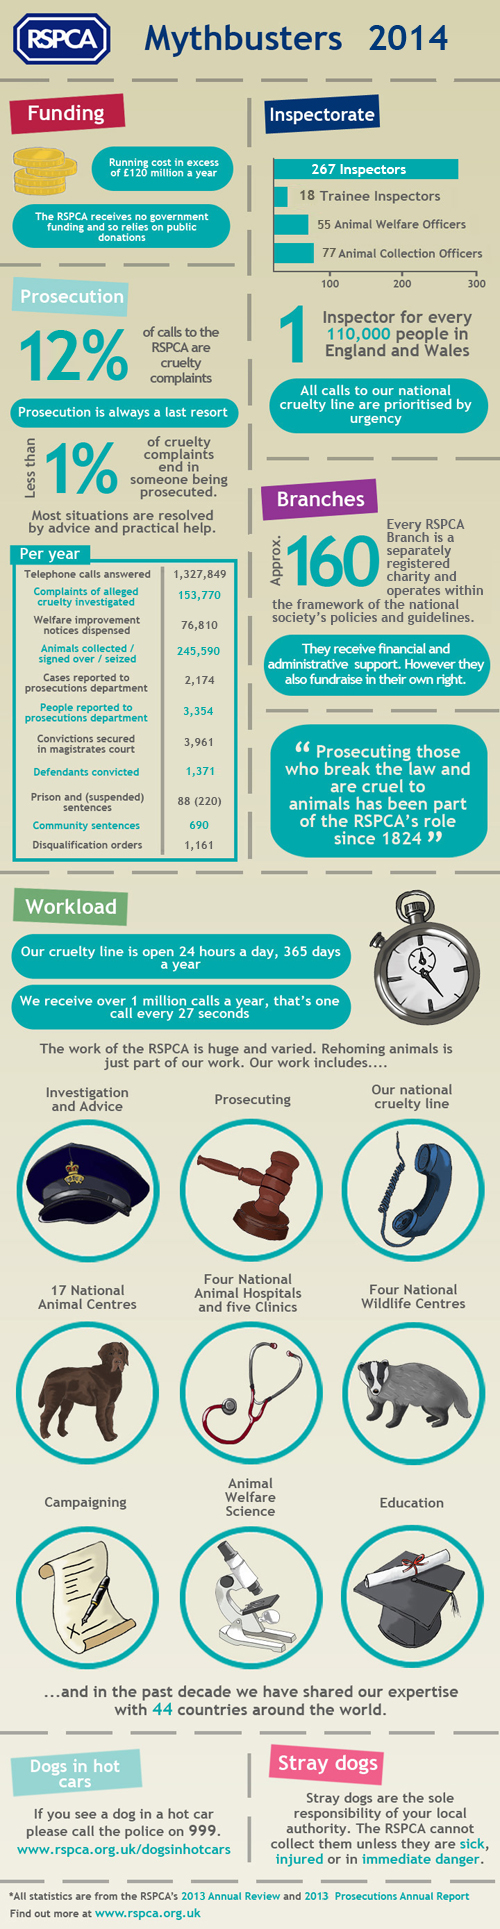 RSPCA Mythbuster Infographic